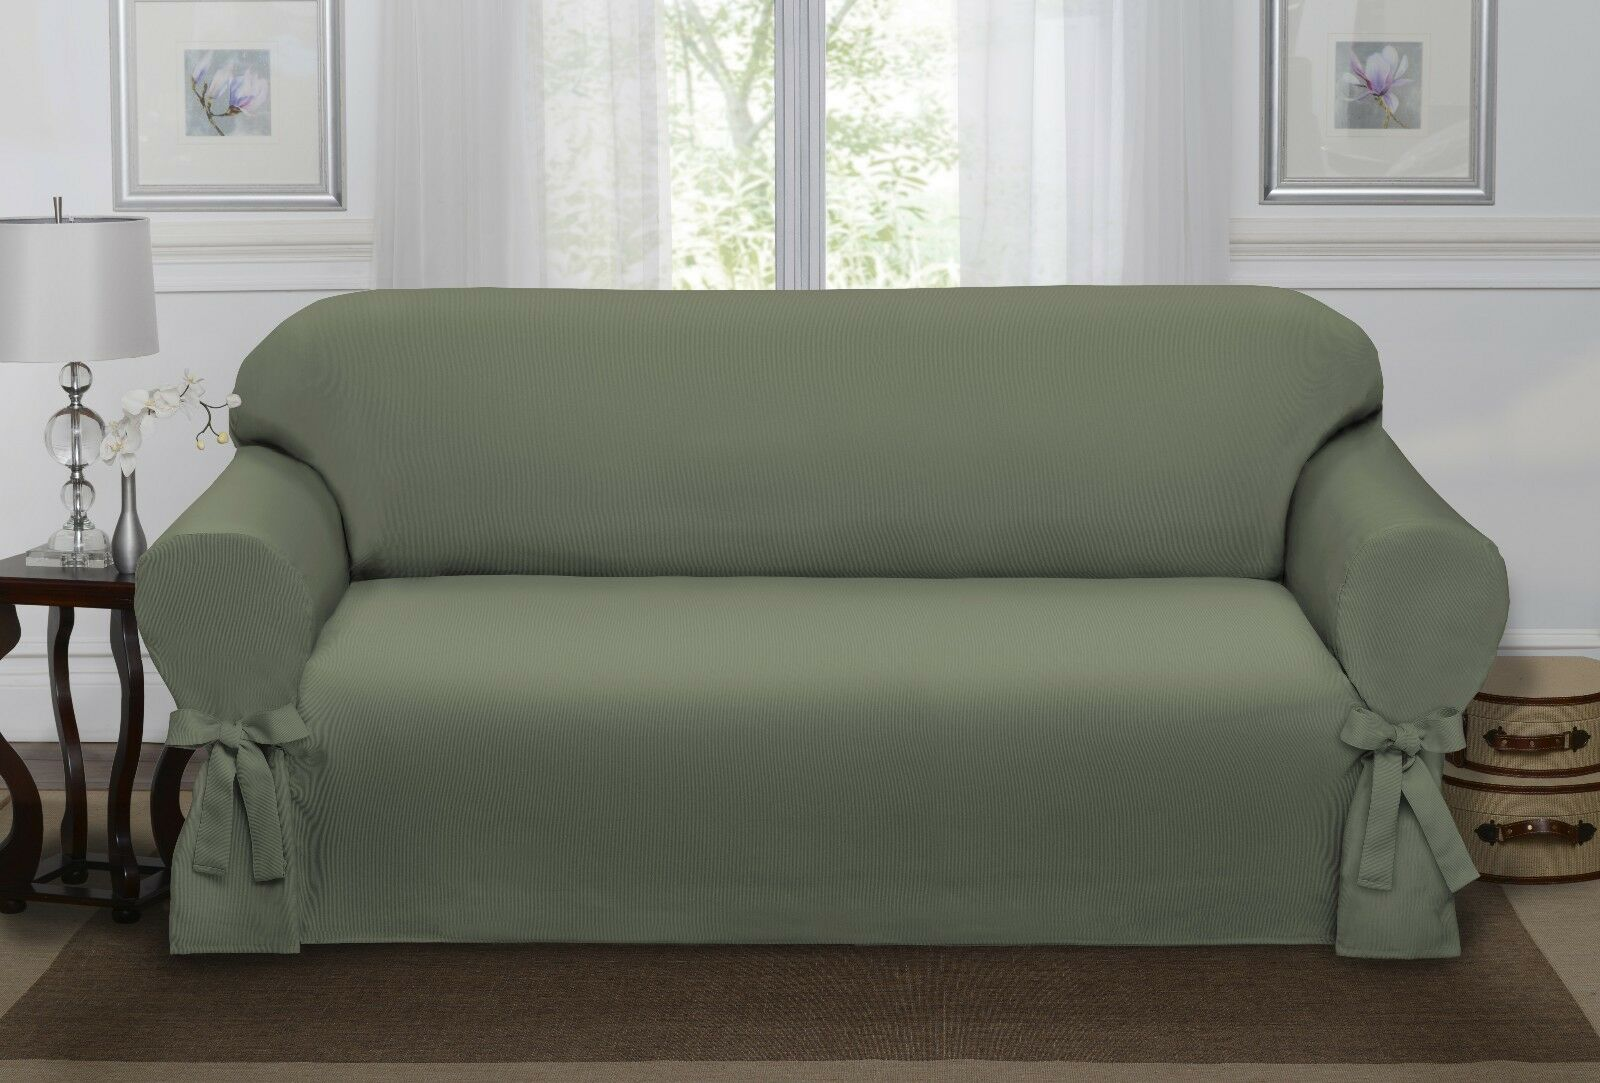 Sage green loden lucerne sofa slipcover couch cover sofa chair 4 colors ebay Cover for loveseat